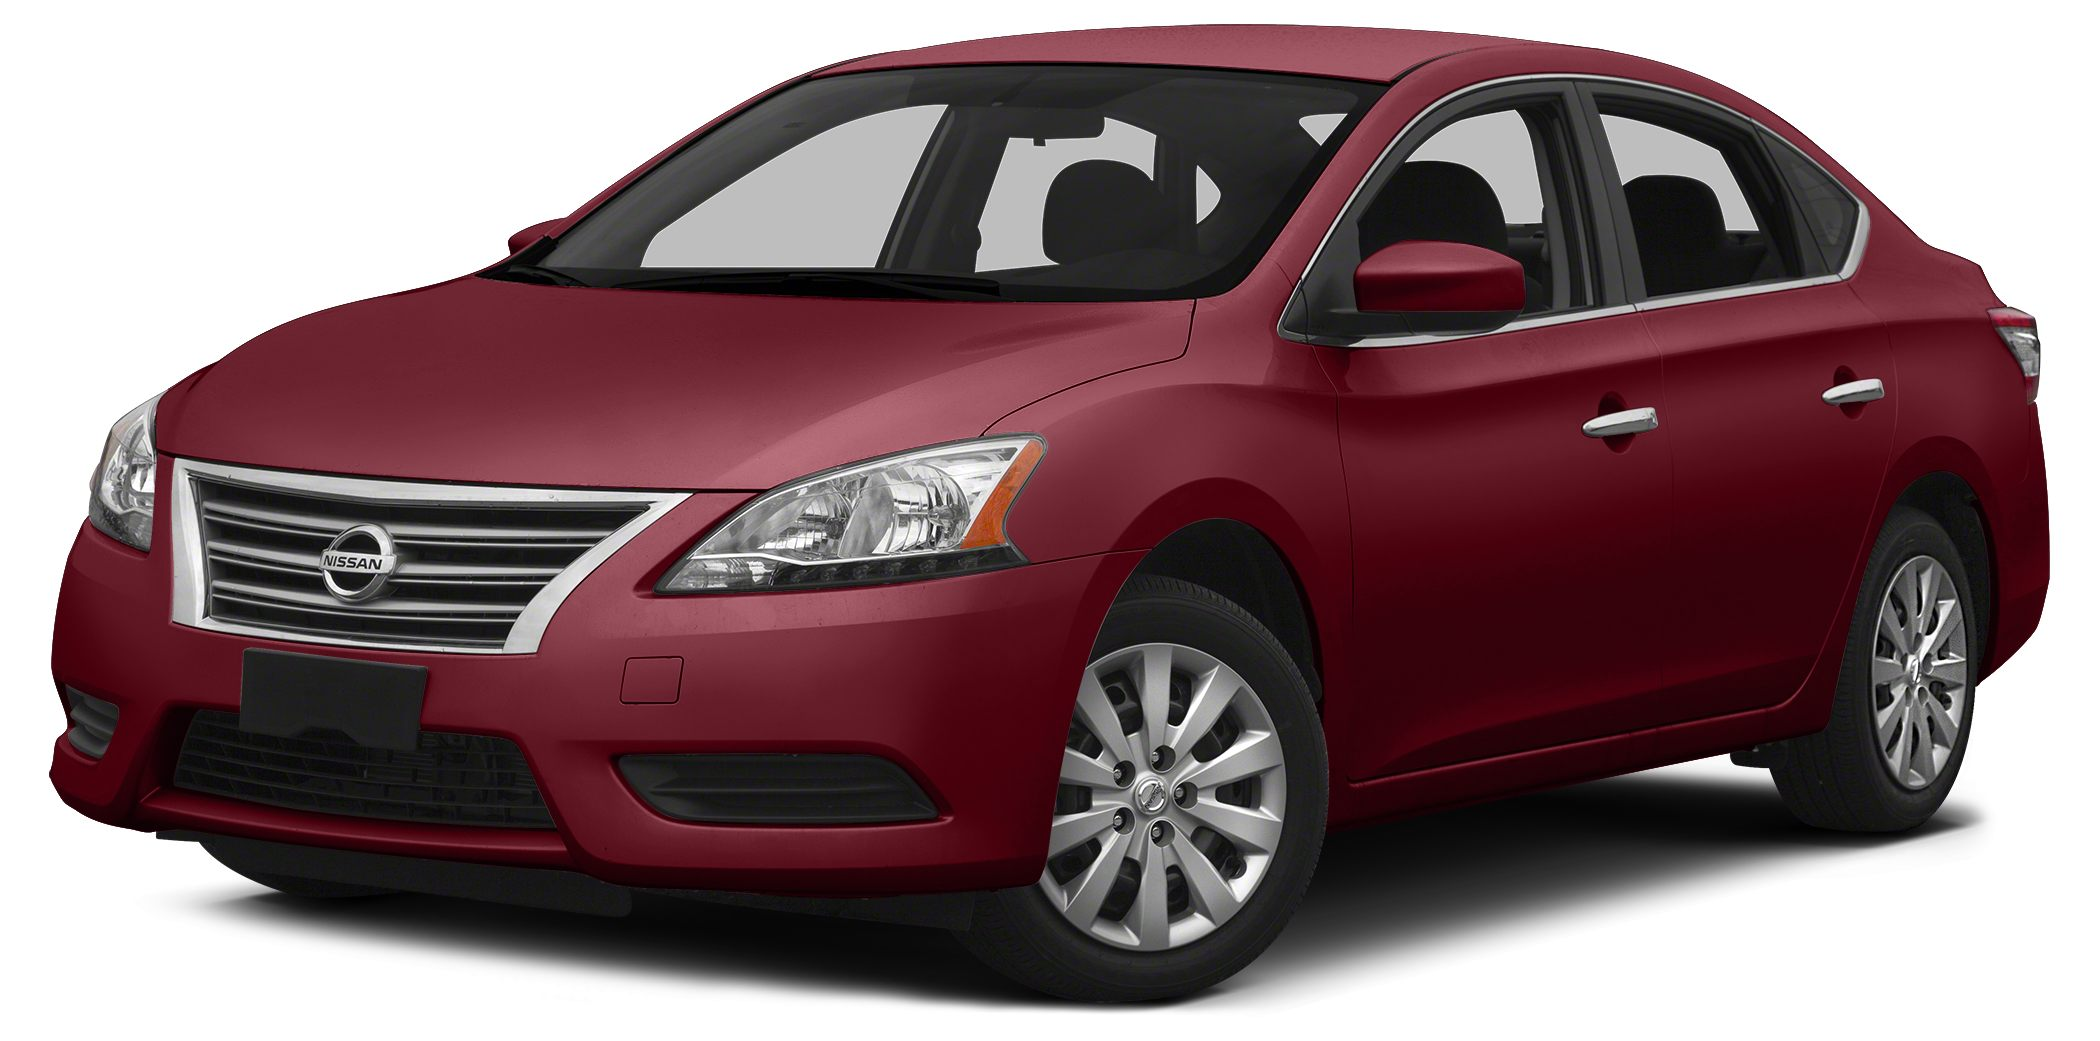 2015 Nissan Sentra SV Clean 2015 Nissan Sentra SV Nicely equipped with cruise control bluetooth